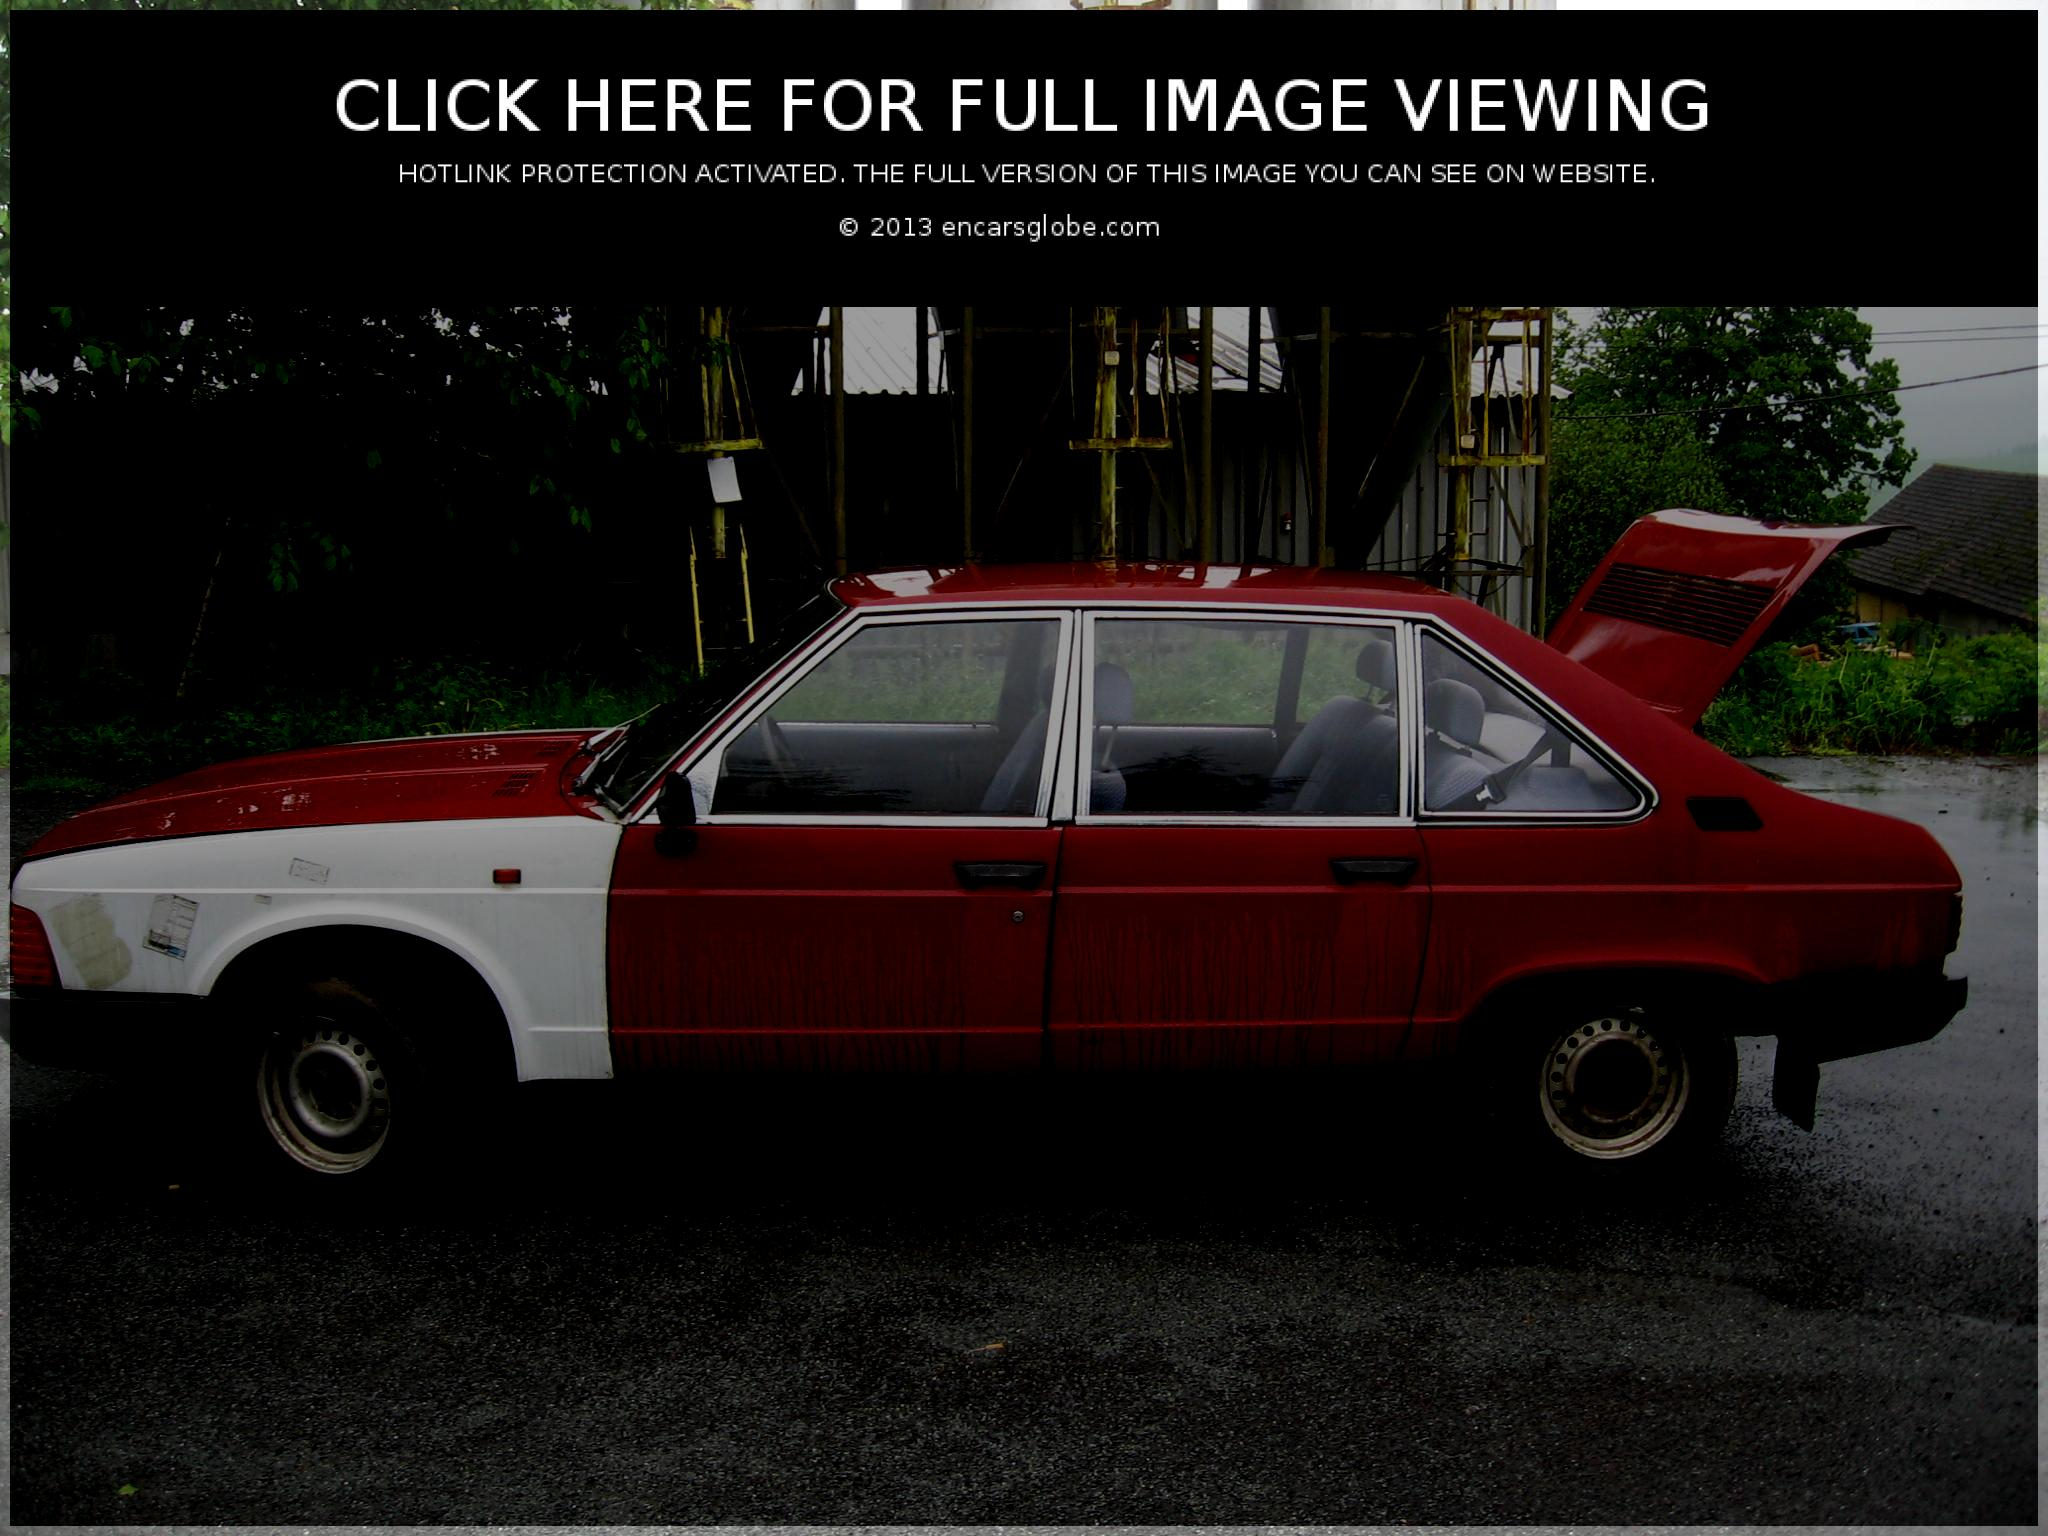 Tatra 613-3: Photo gallery, complete information about model ...